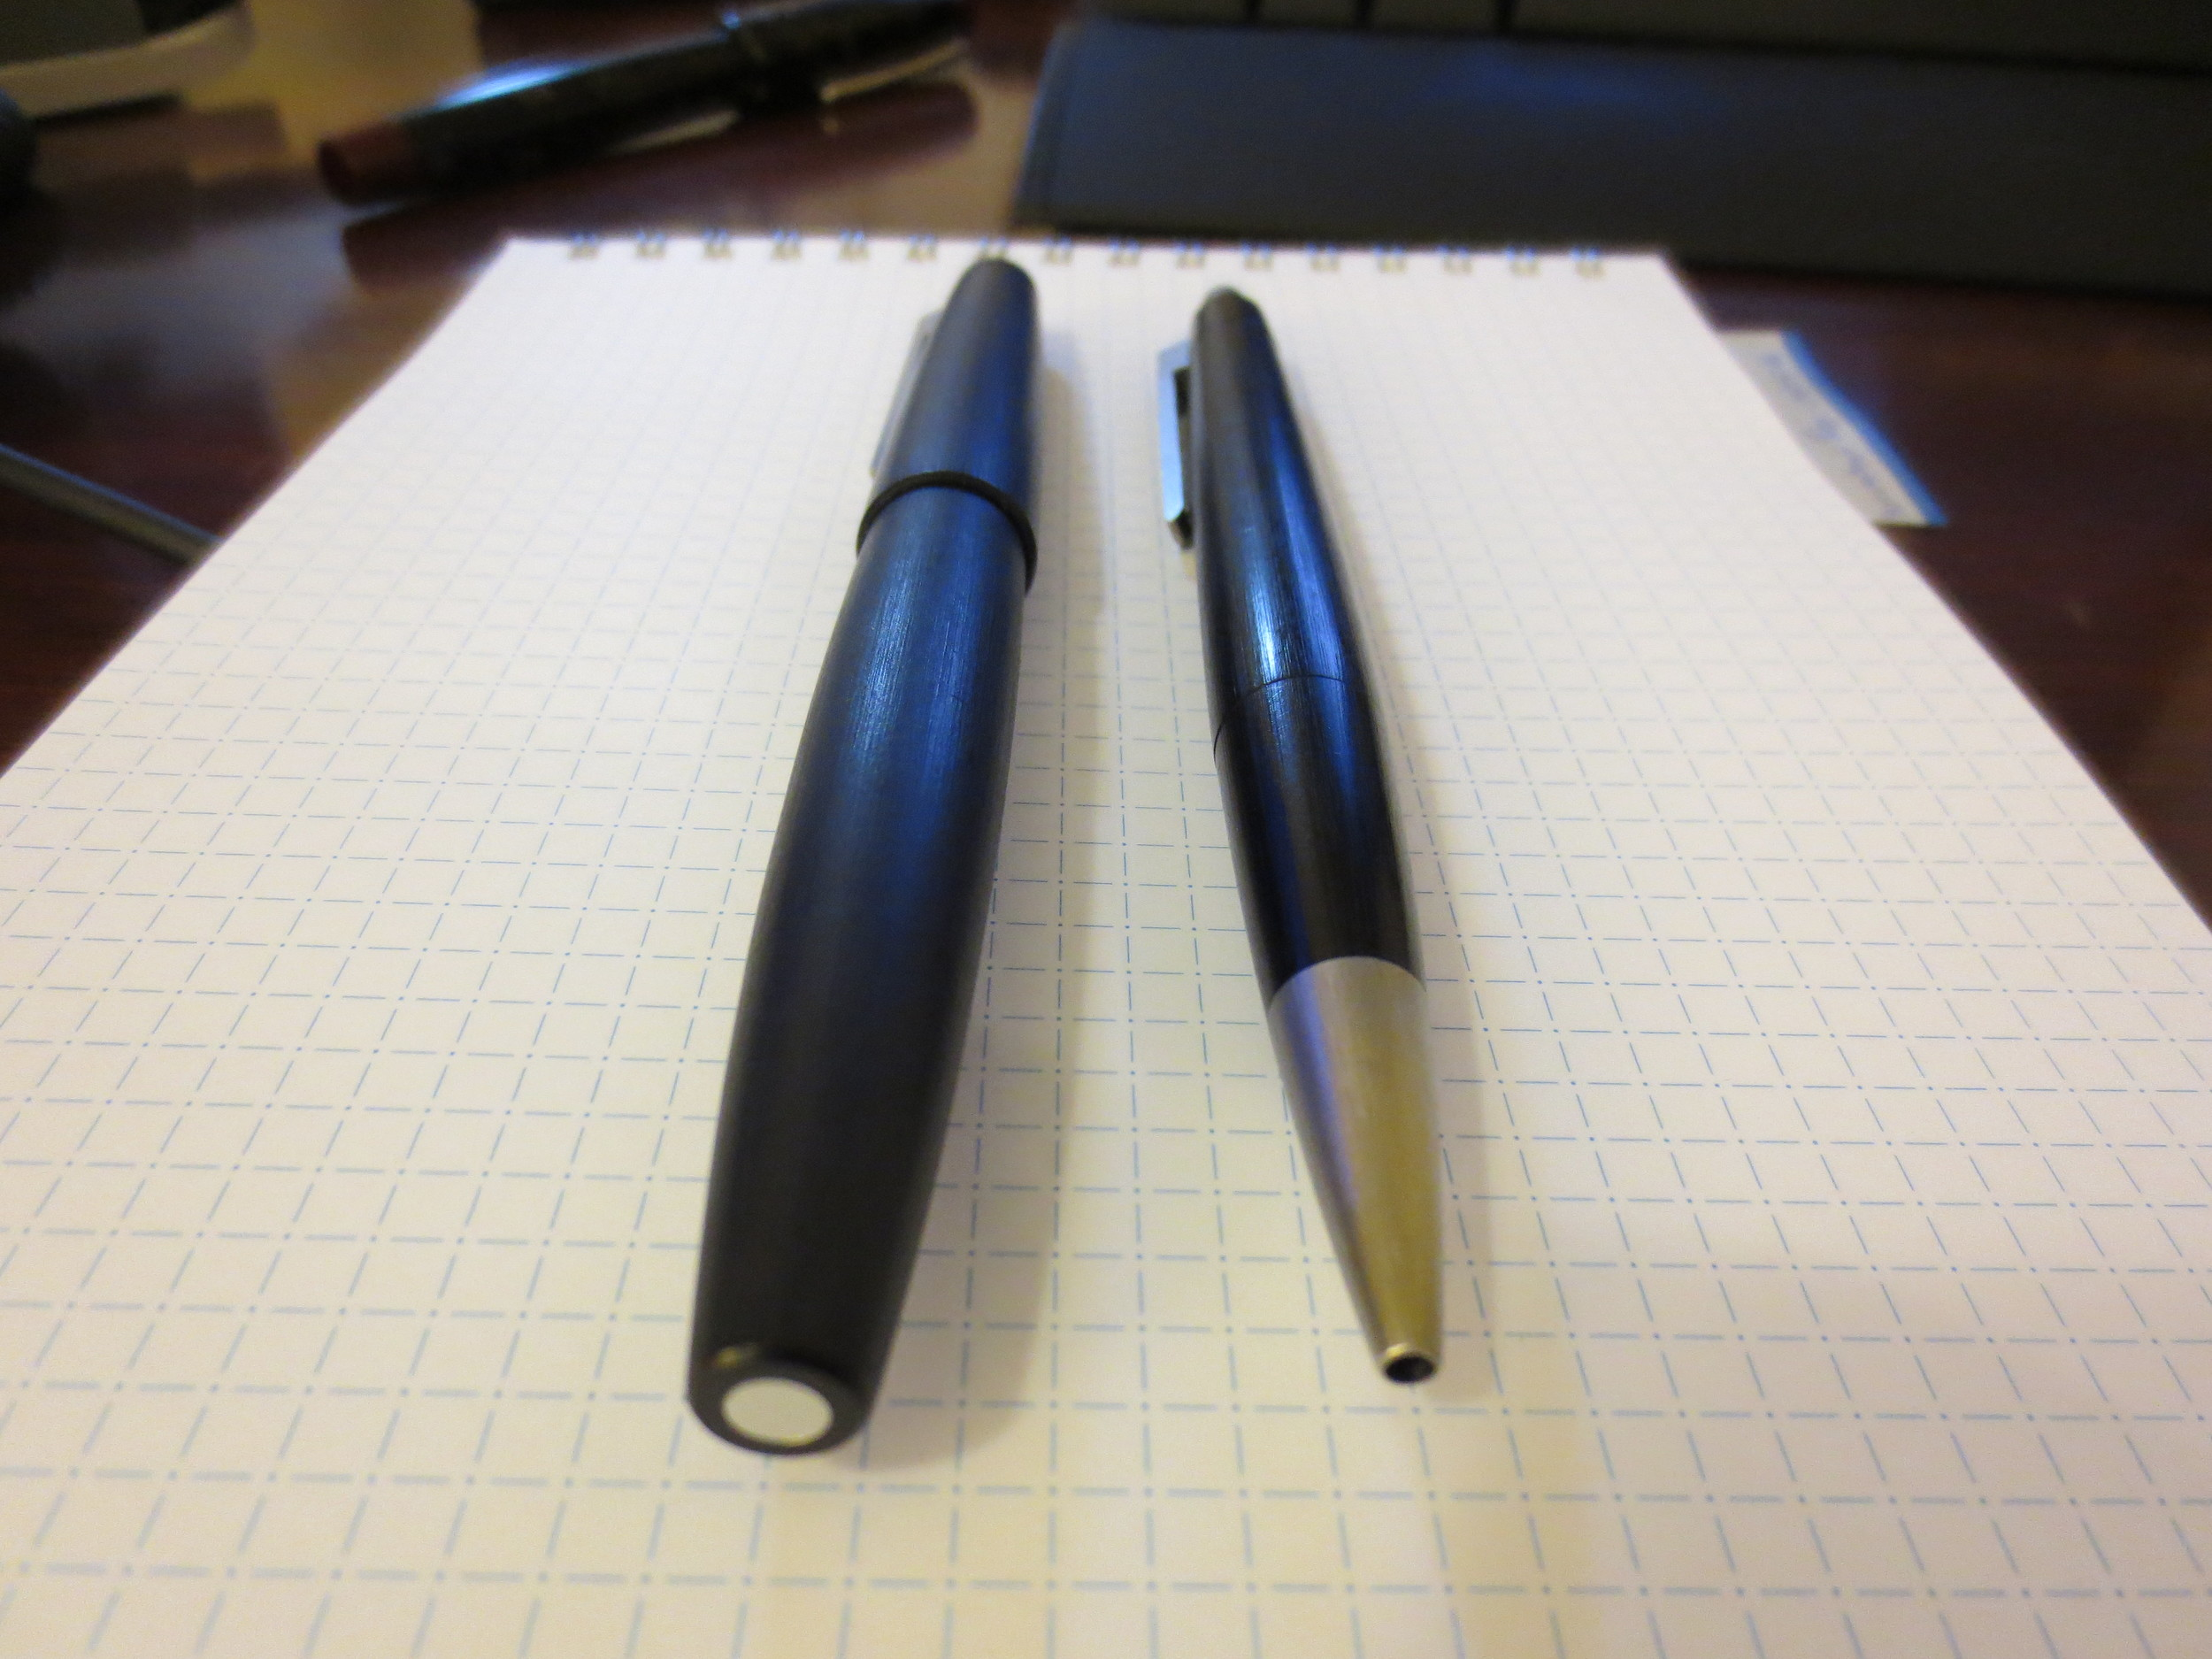 The Lamy 2000 Fountain Pen and Ballpoint side-by-side.